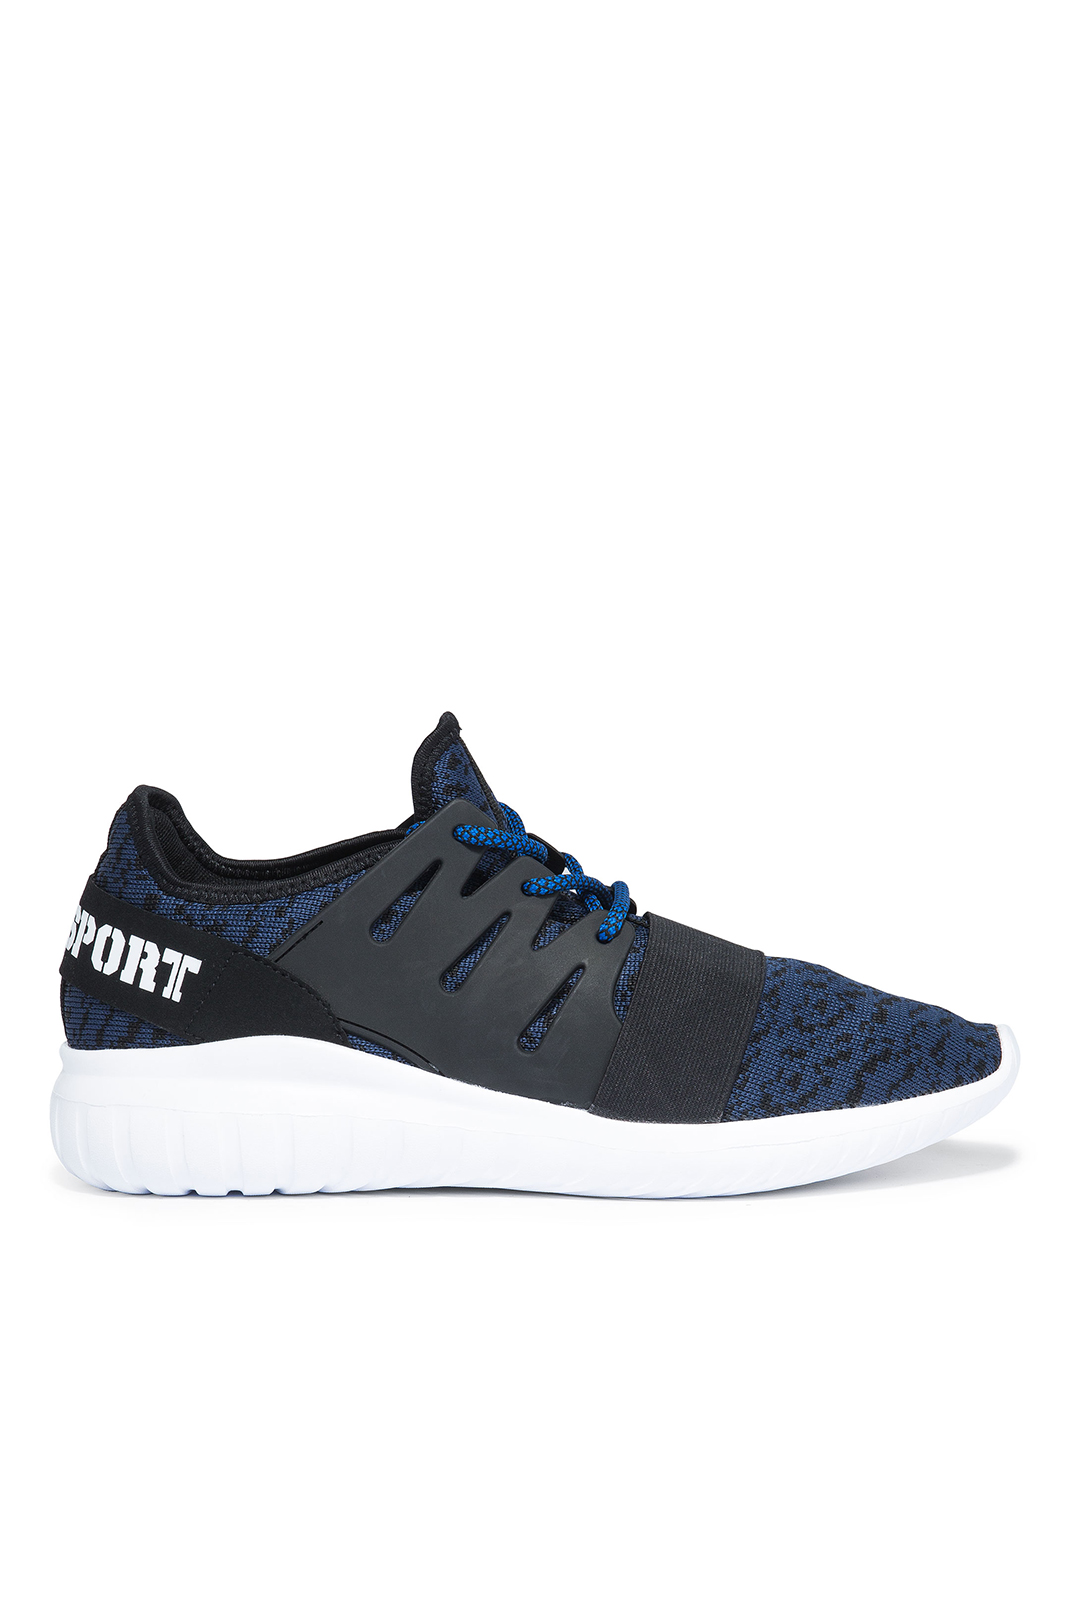 Baskets / Sport  Plein Sport P17S MSC0332 COBALT NICKEL